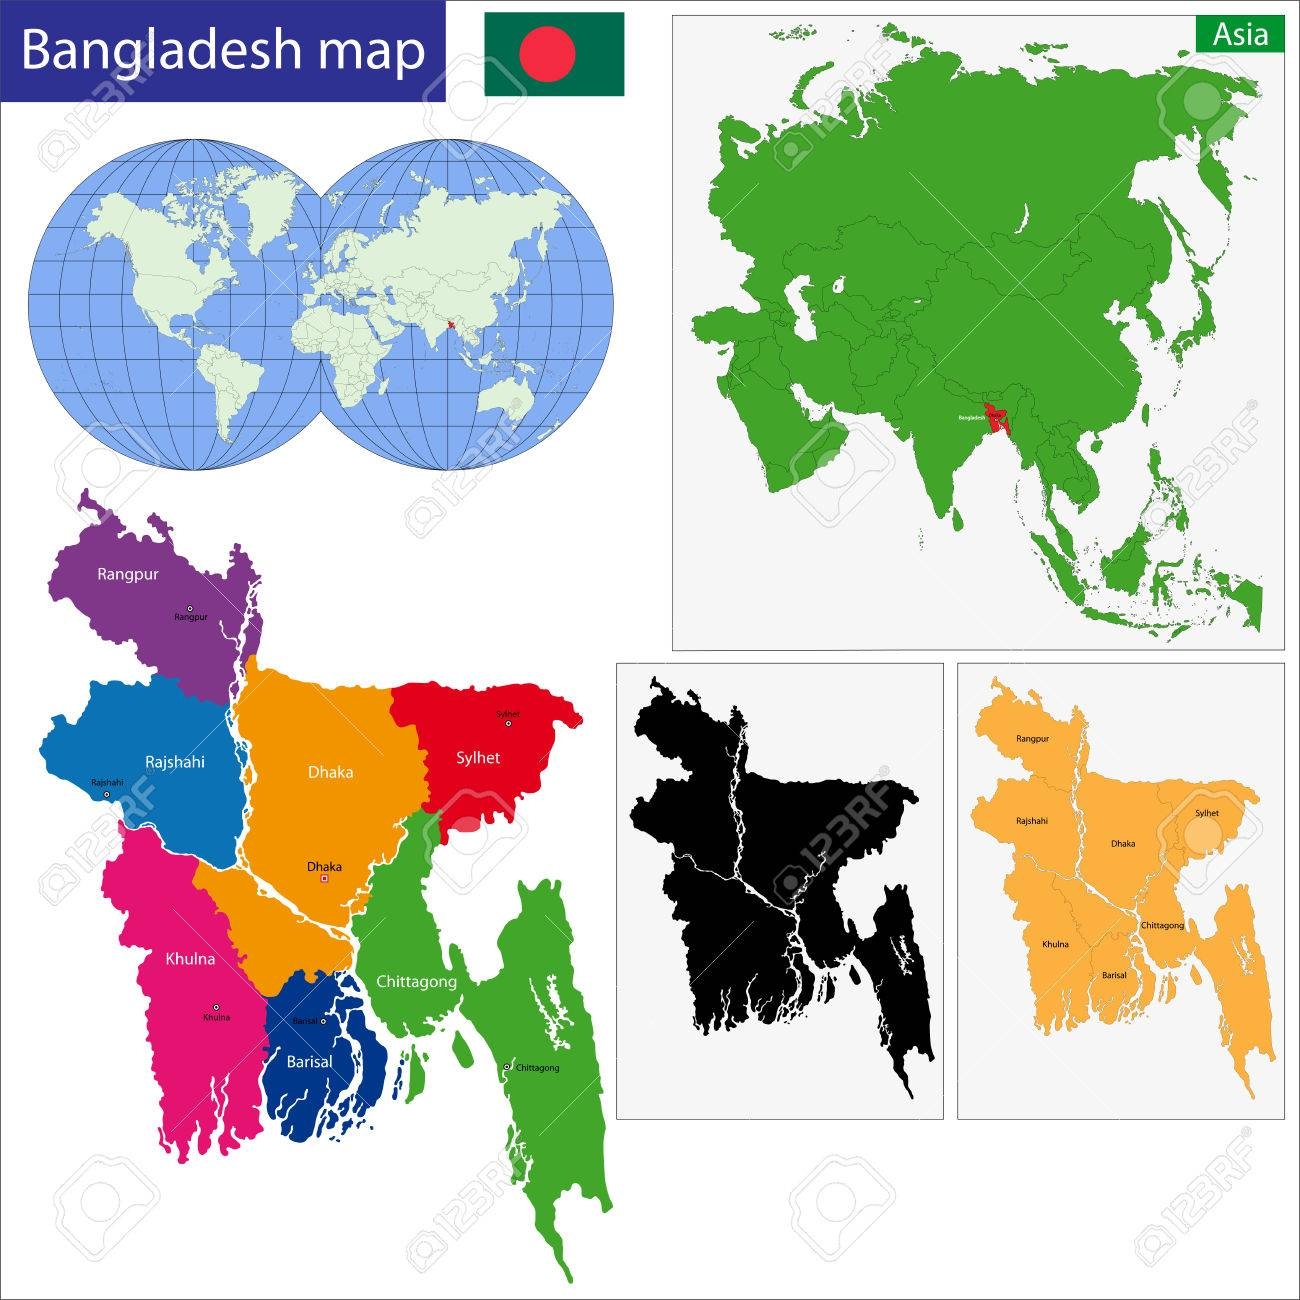 Map Of Peoples Republic Of Bangladesh With The Provinces Colored - Map of dhaka division bangladesh